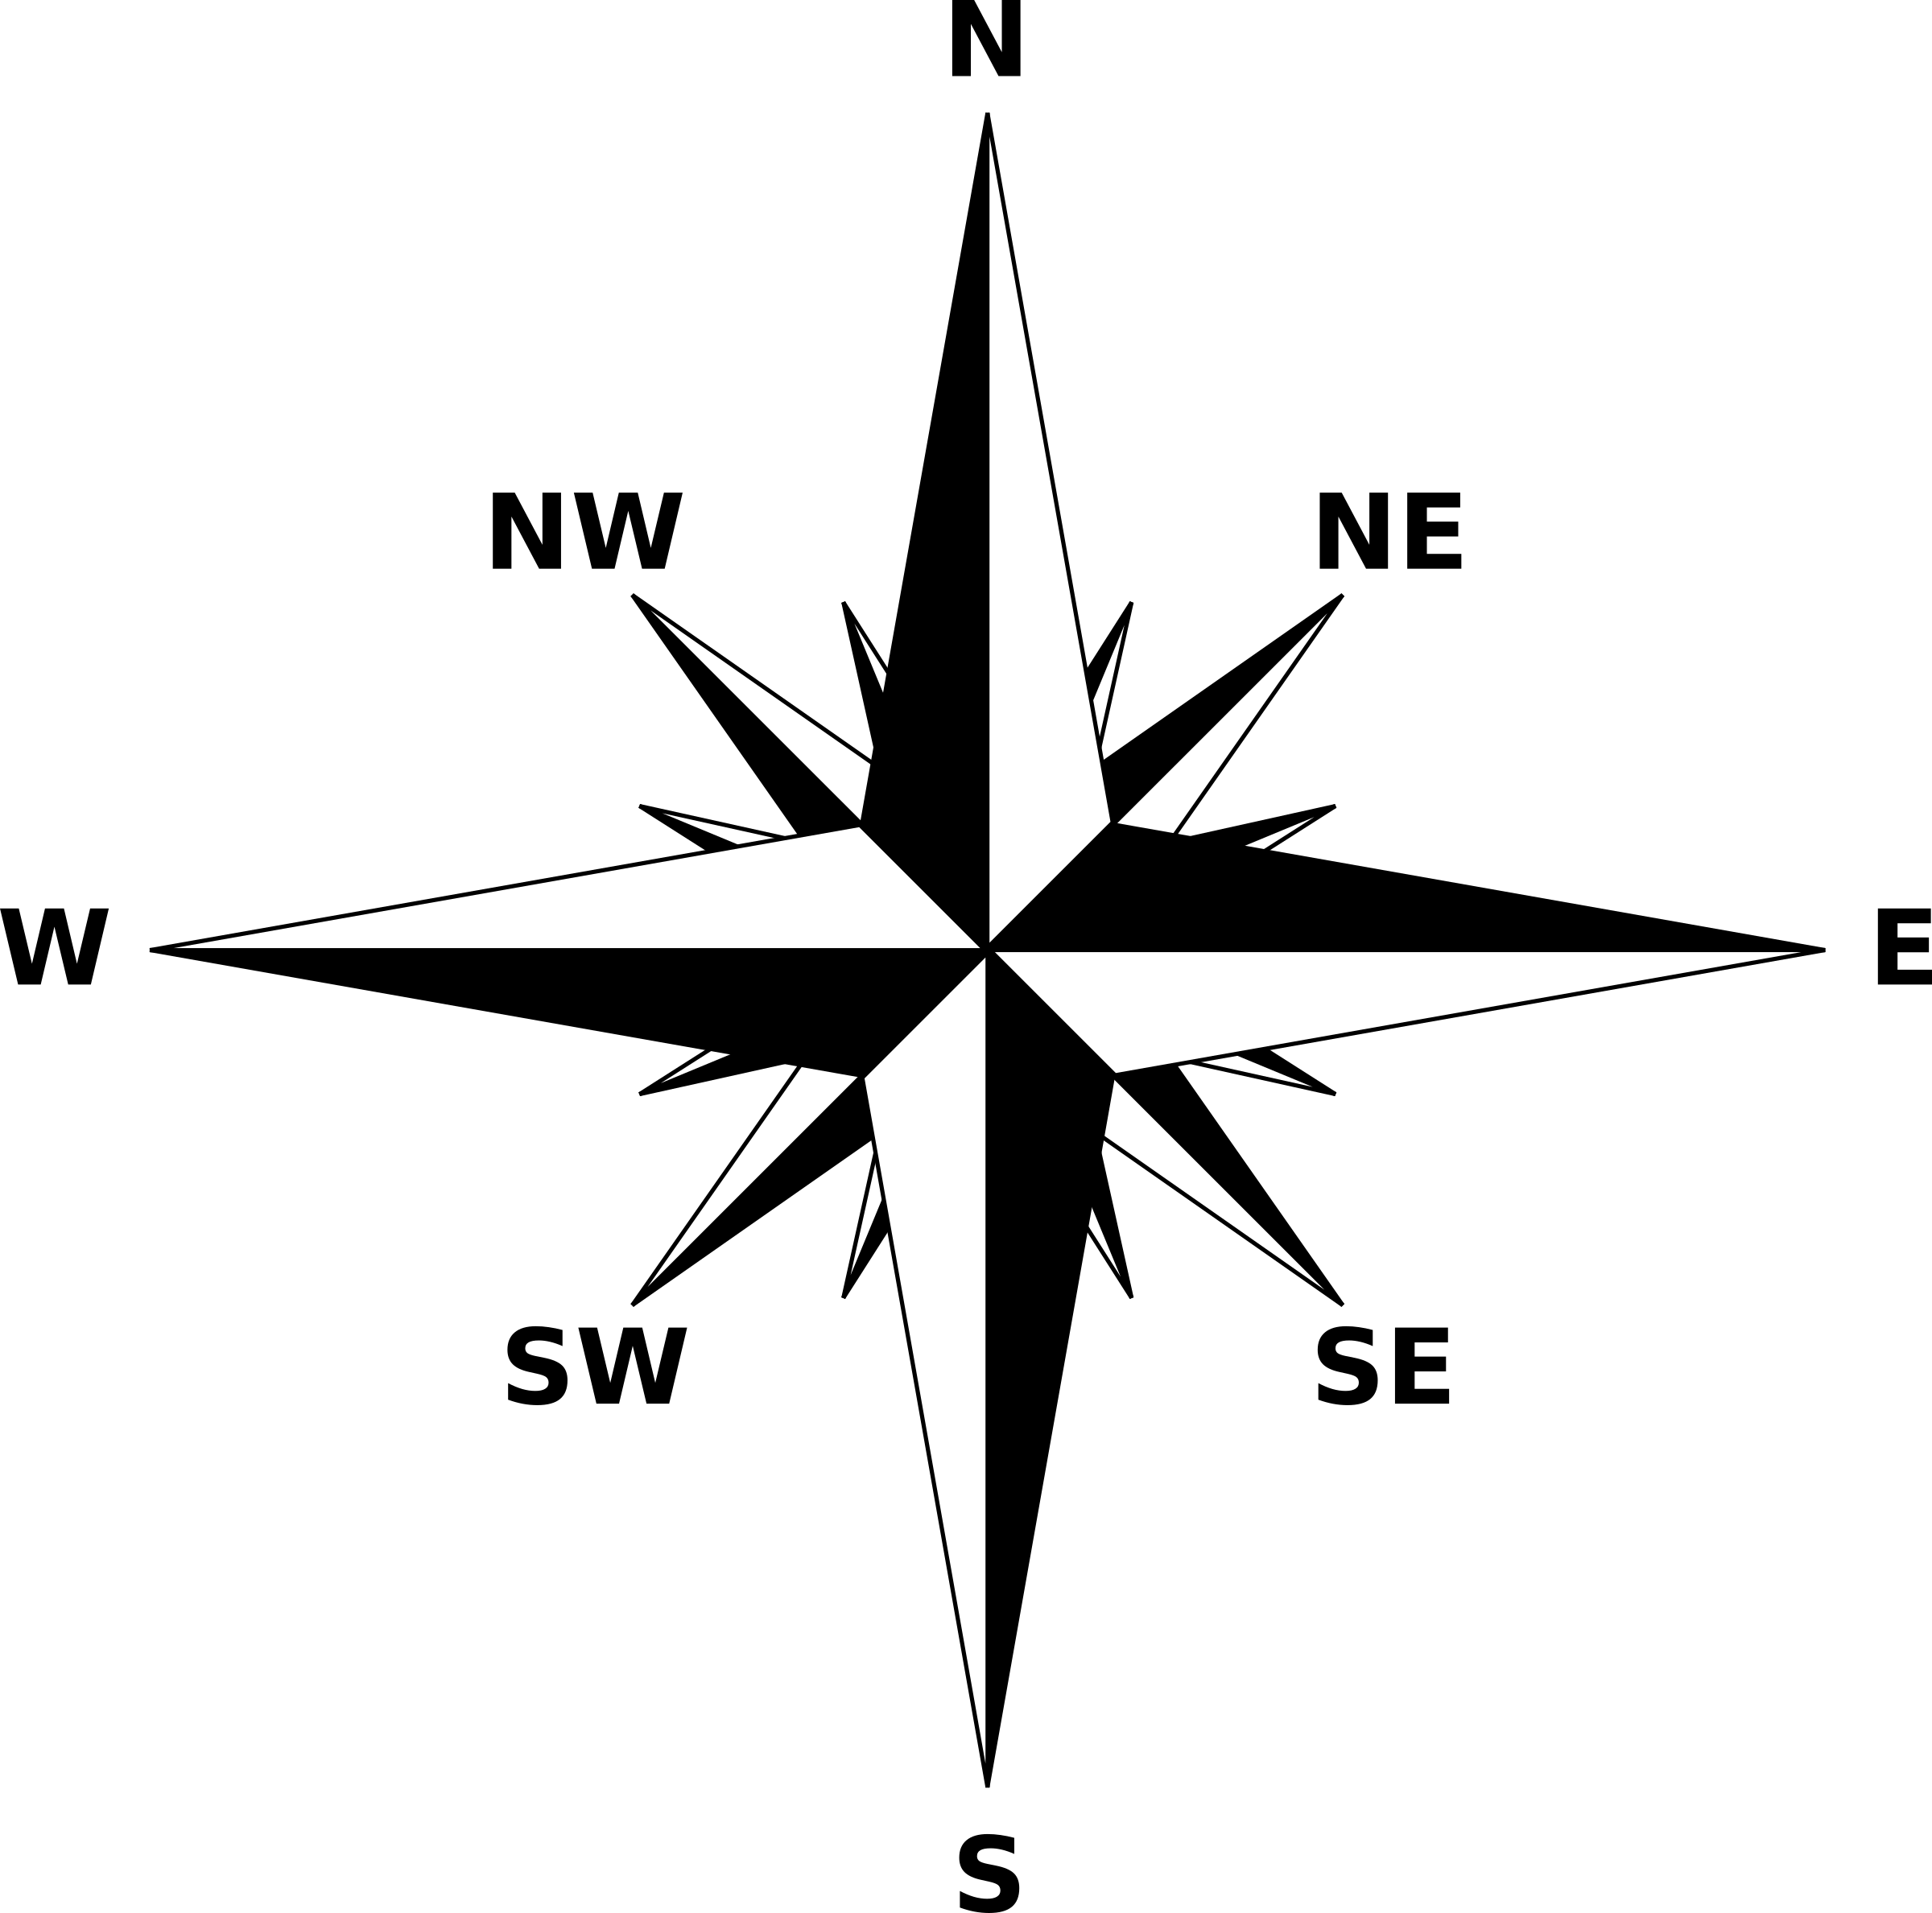 Free Download Compass Rose Png Images #29378.